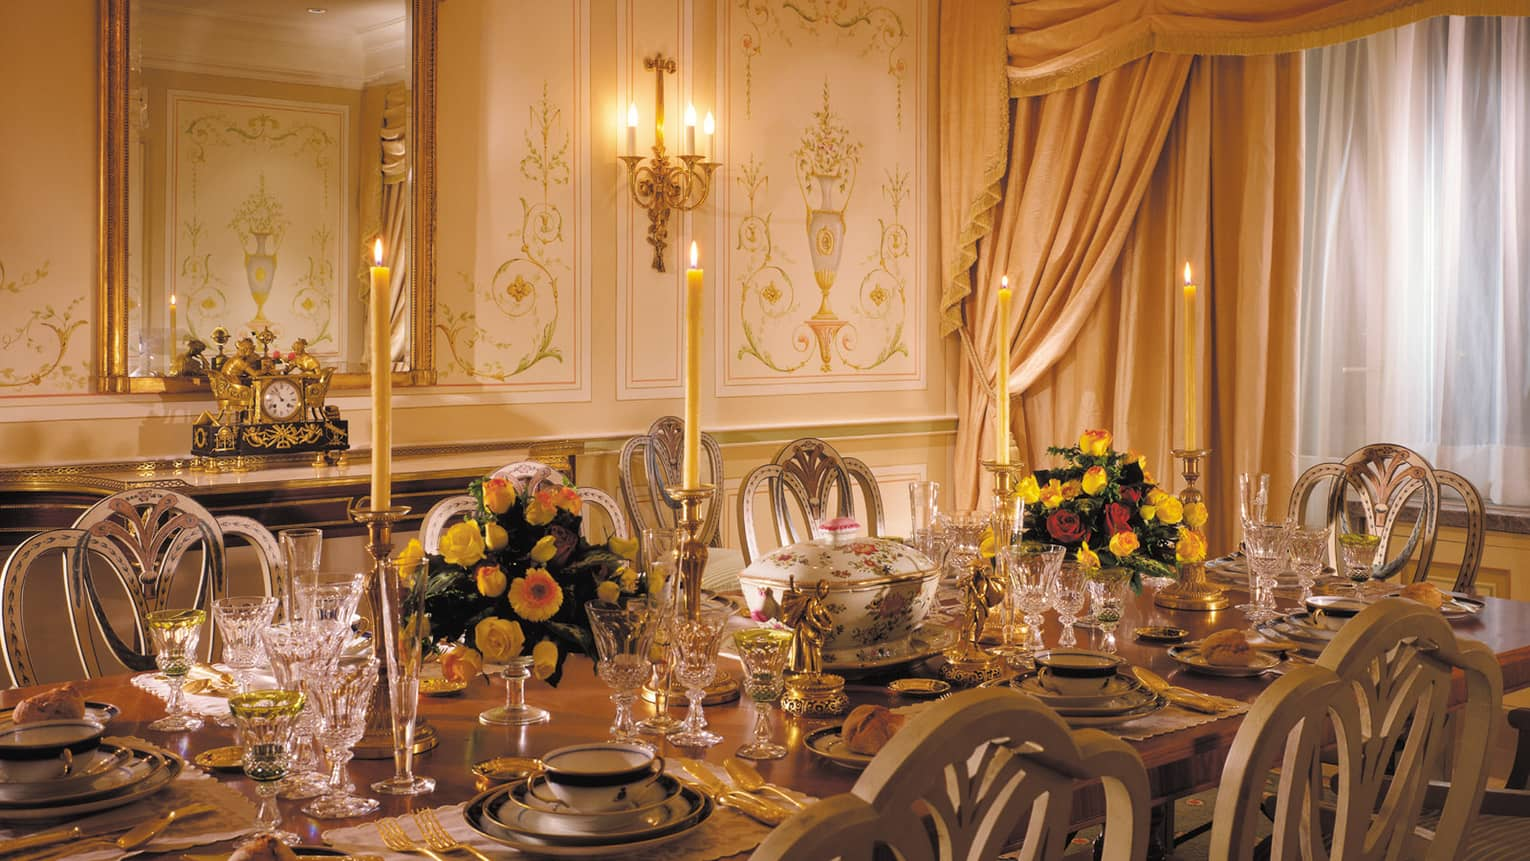 Presidential Suite elegant private dining table with tall candles, crystal glasses, antique dishes, wall panels